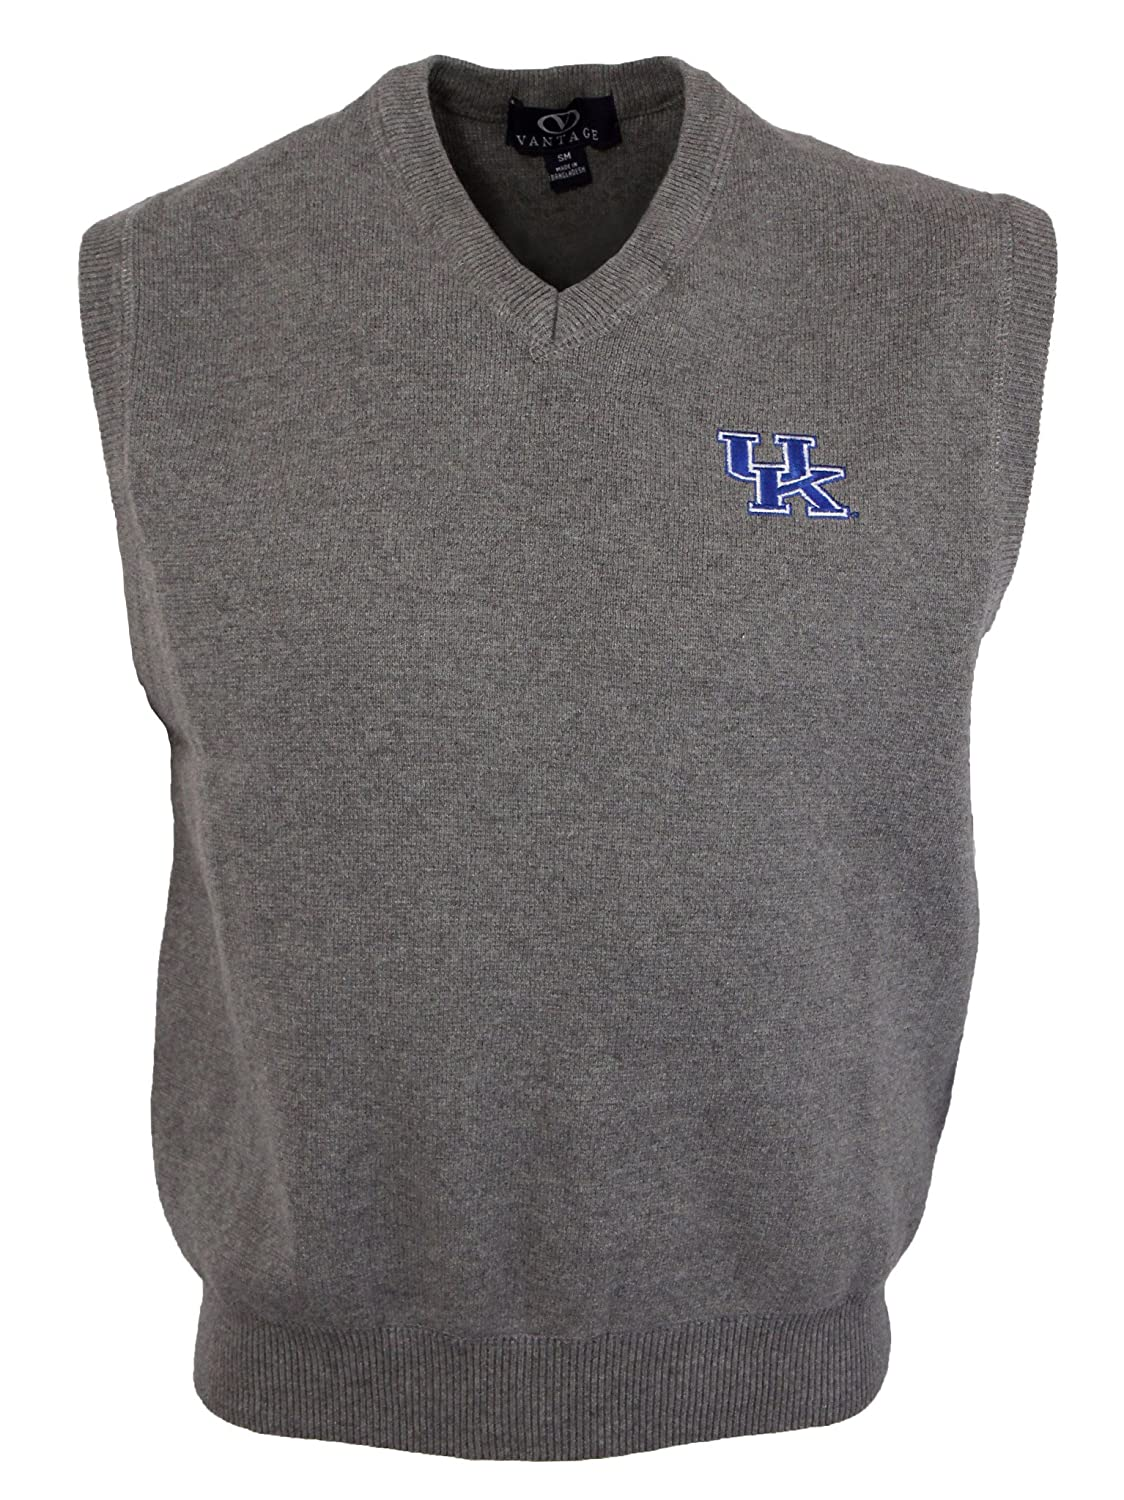 Amazon.com : Men's University of Kentucky Milano Knit Sweater Vest ...